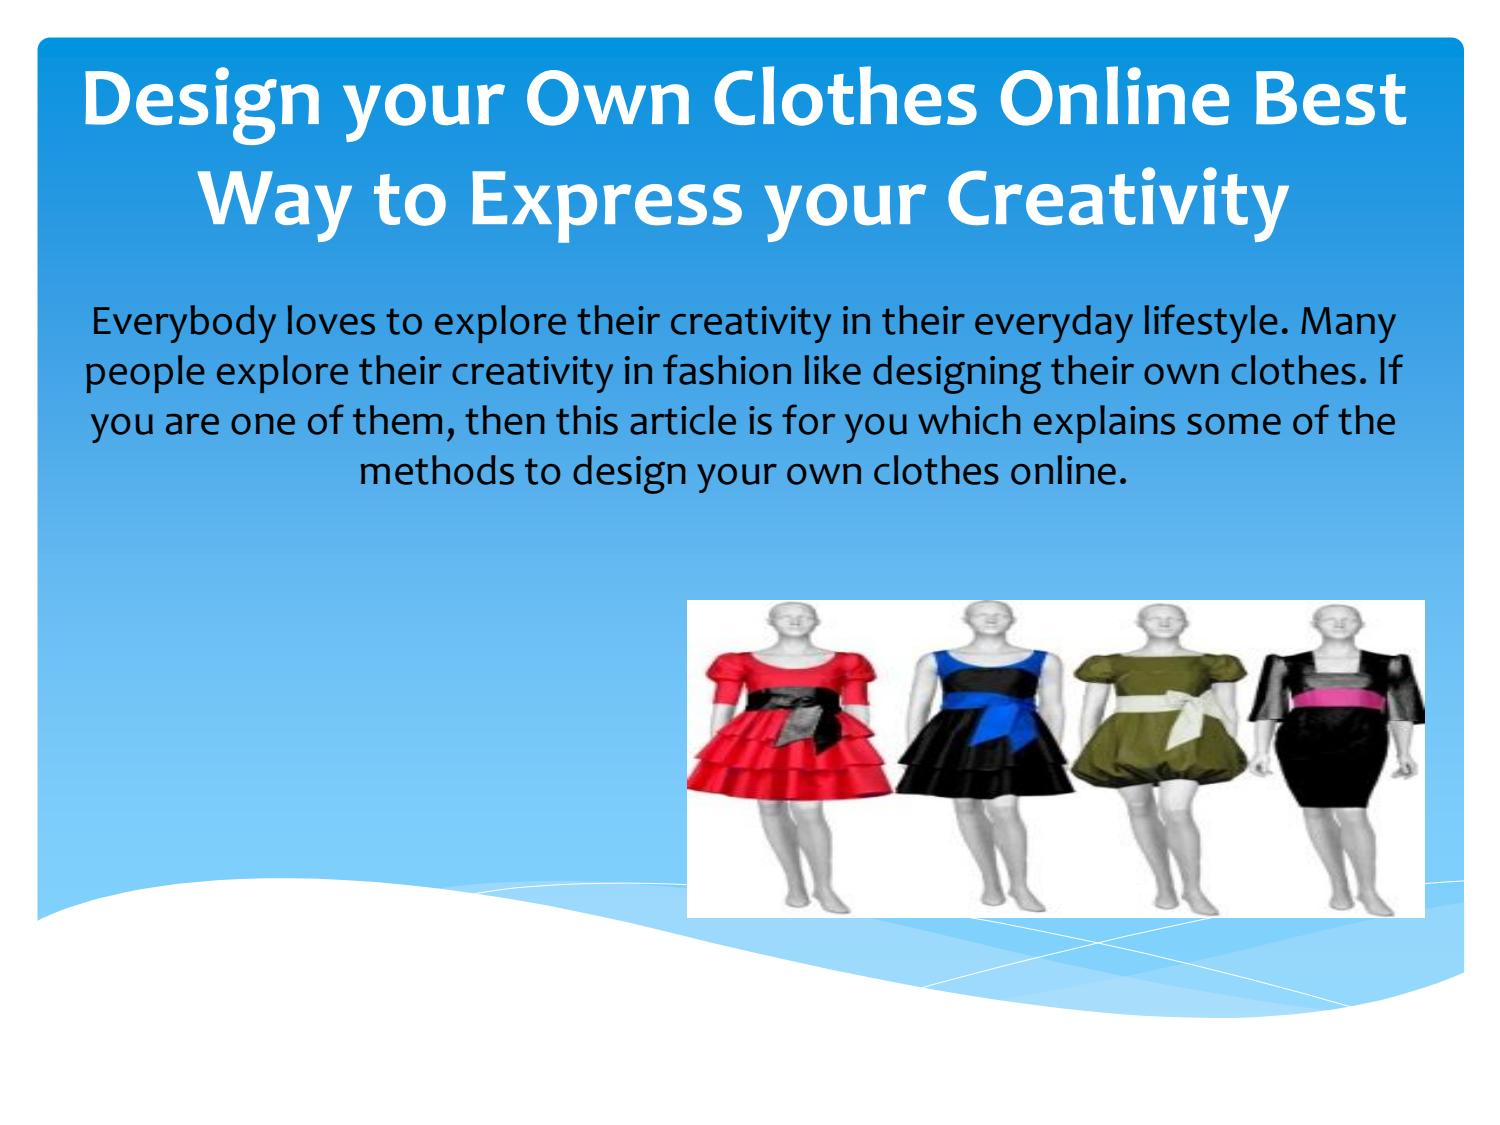 Design Your Cloth Online And Show Your Creativity By Rasmi Metha Issuu